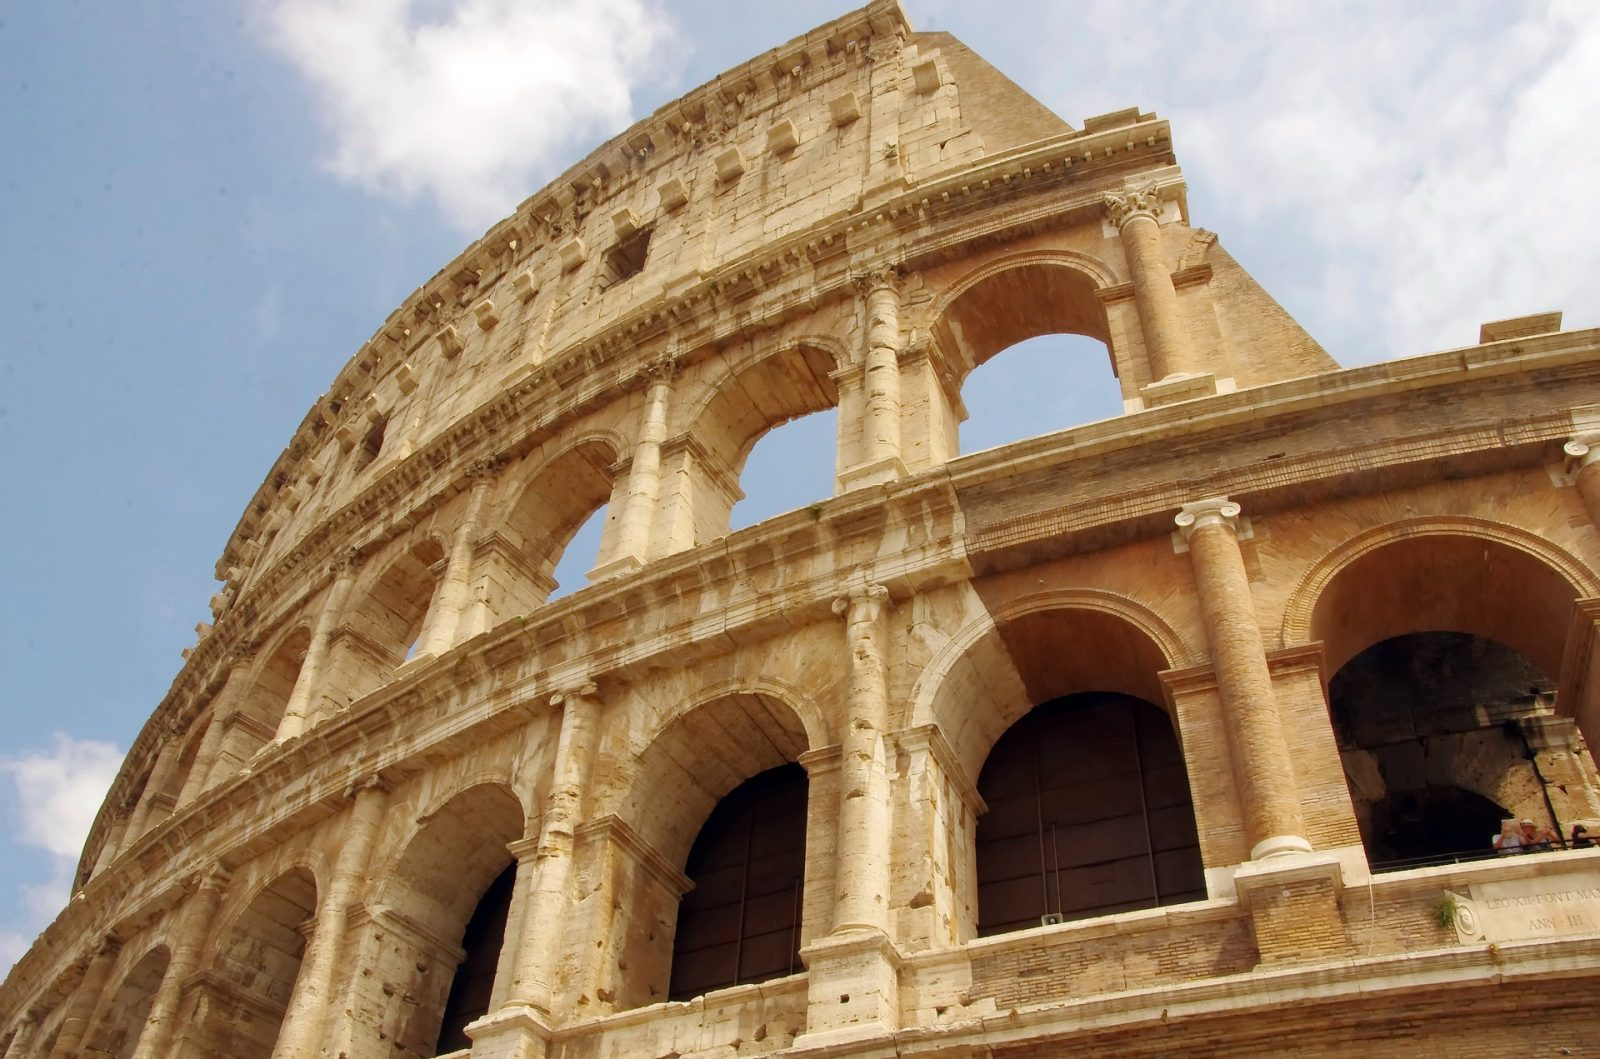 free entry to the Colosseum